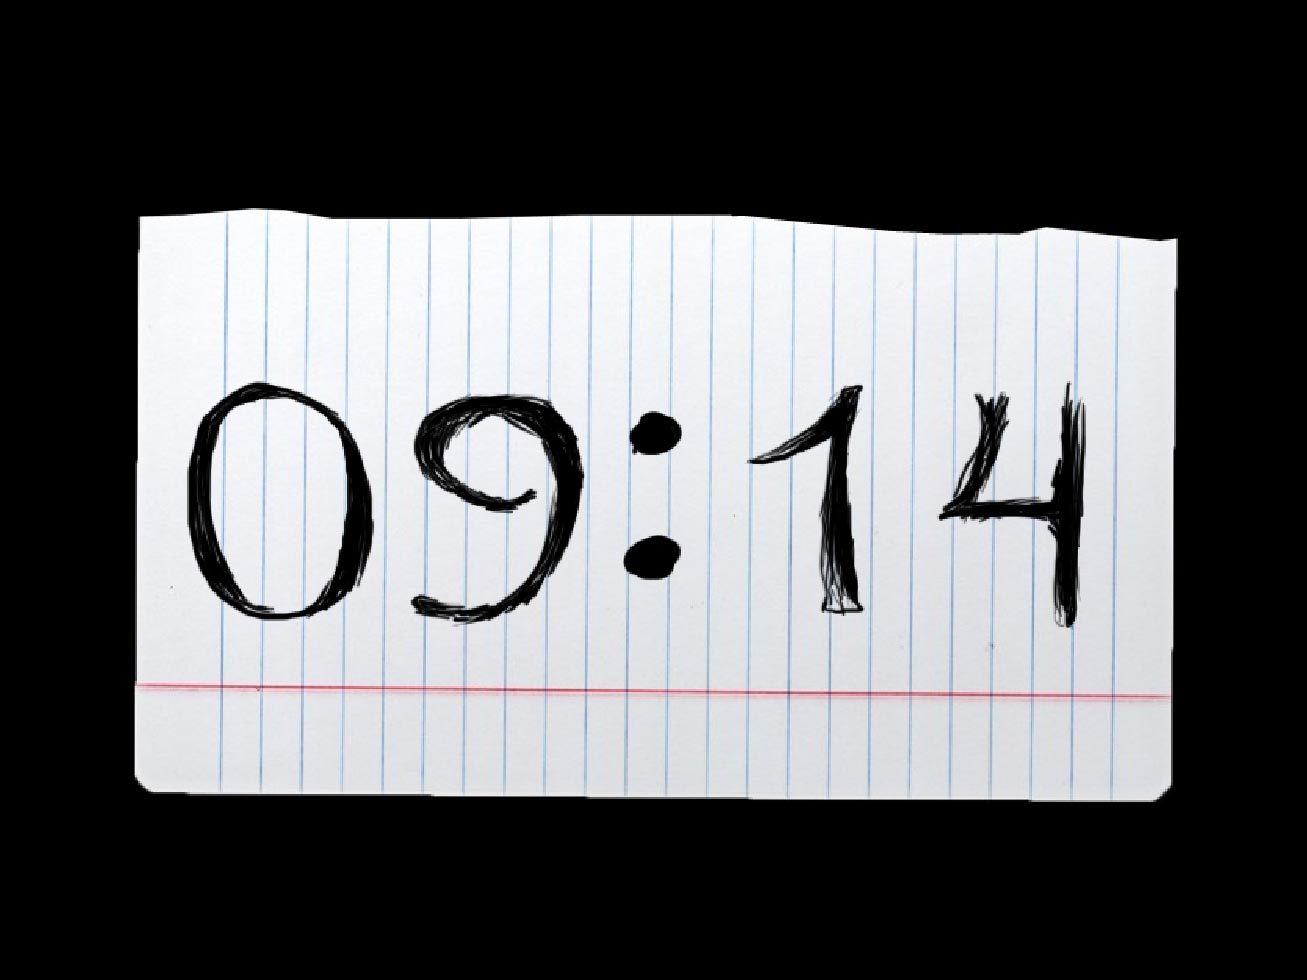 Blot Clock screensaver